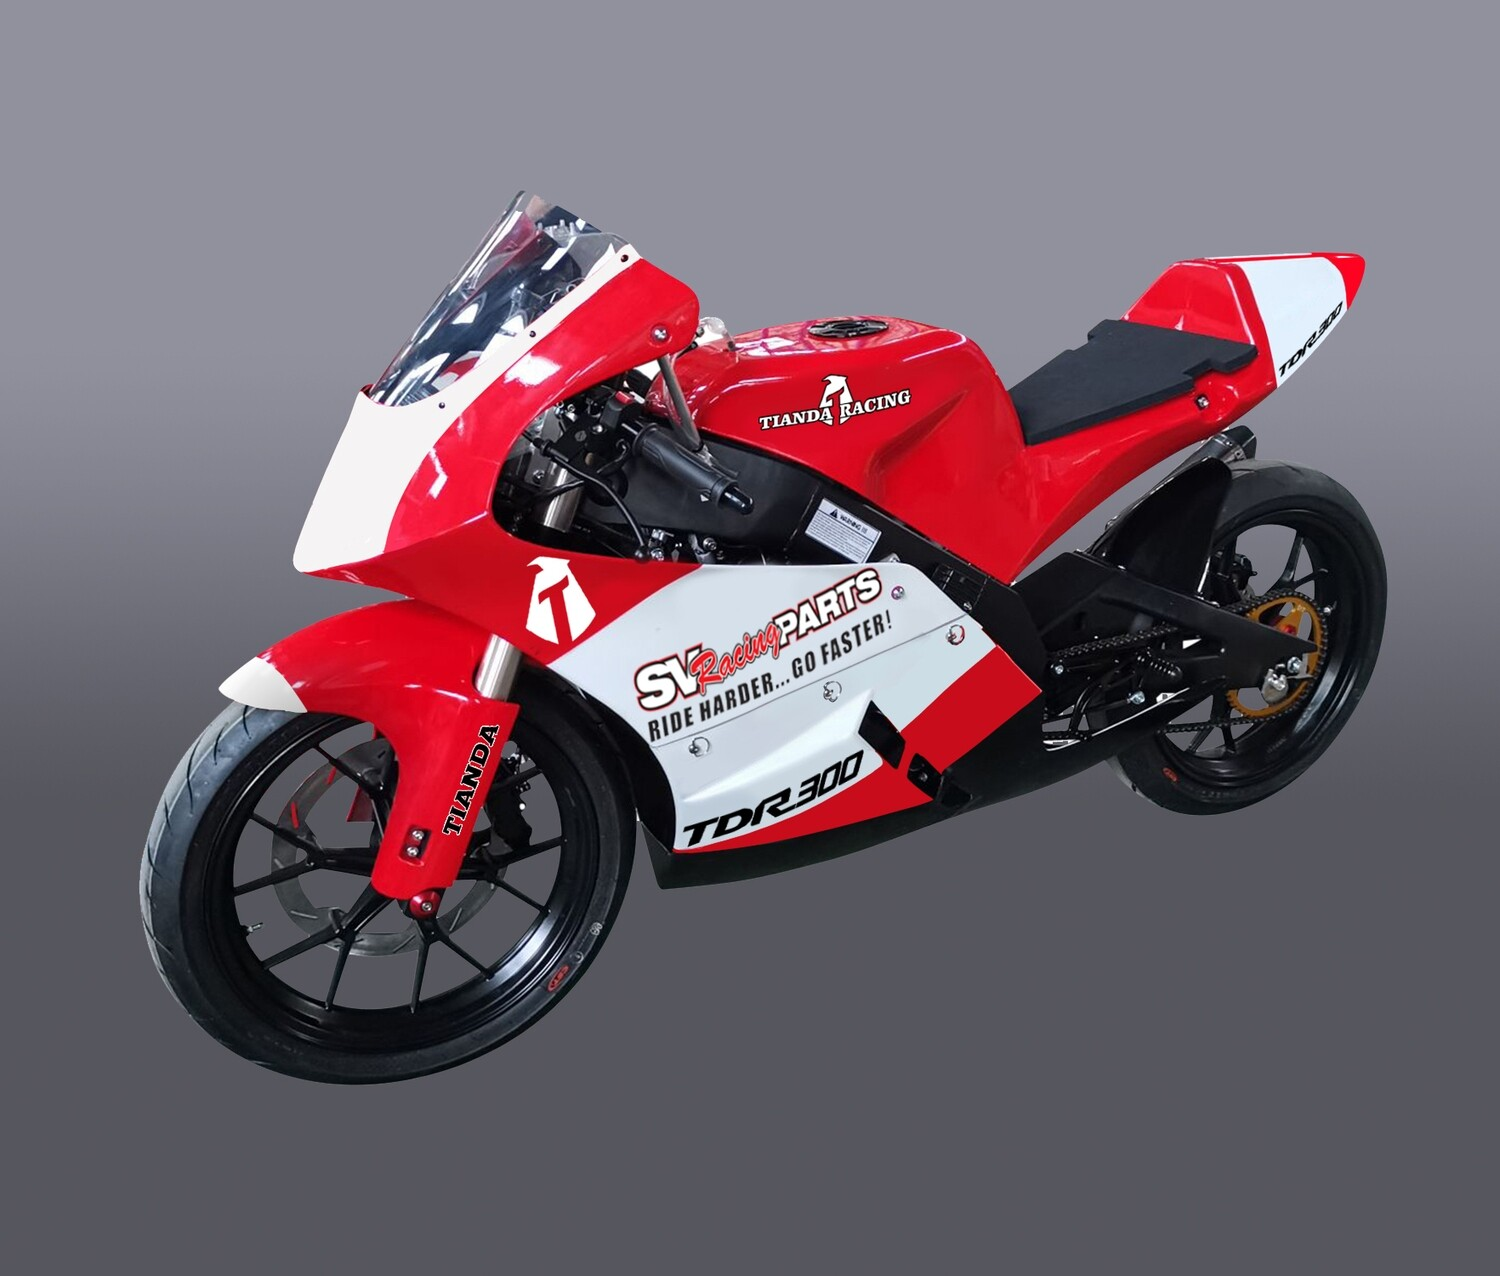 Tianda TDR 300 GP Style Race Bike, 17 Inch Race Wheels, Electric Start, Six Speed Transmission;